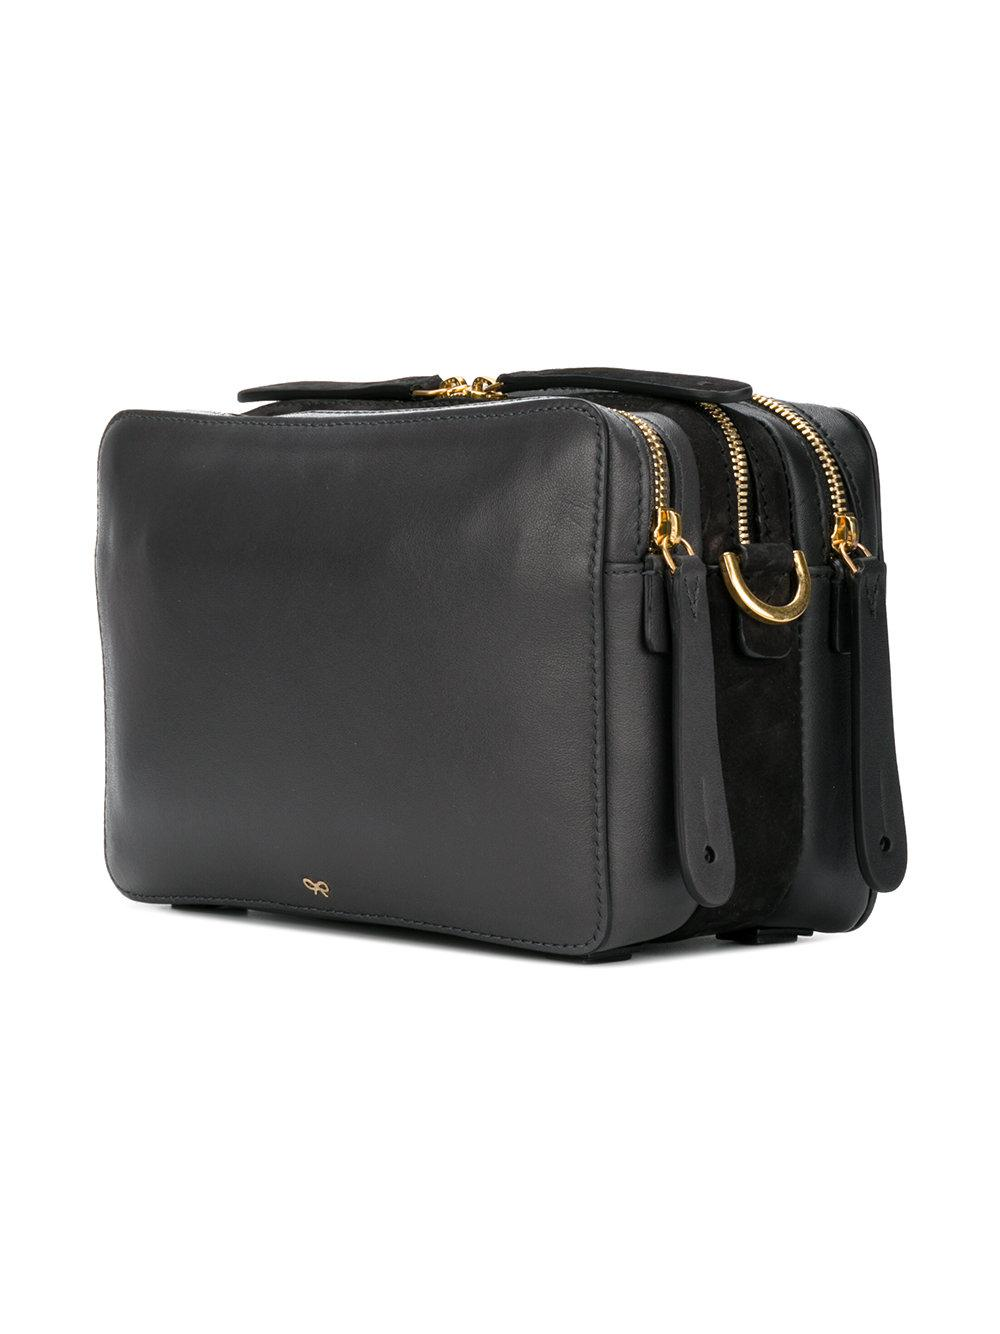 Anya Hindmarch Leather Stack Cross Body Bag in Black